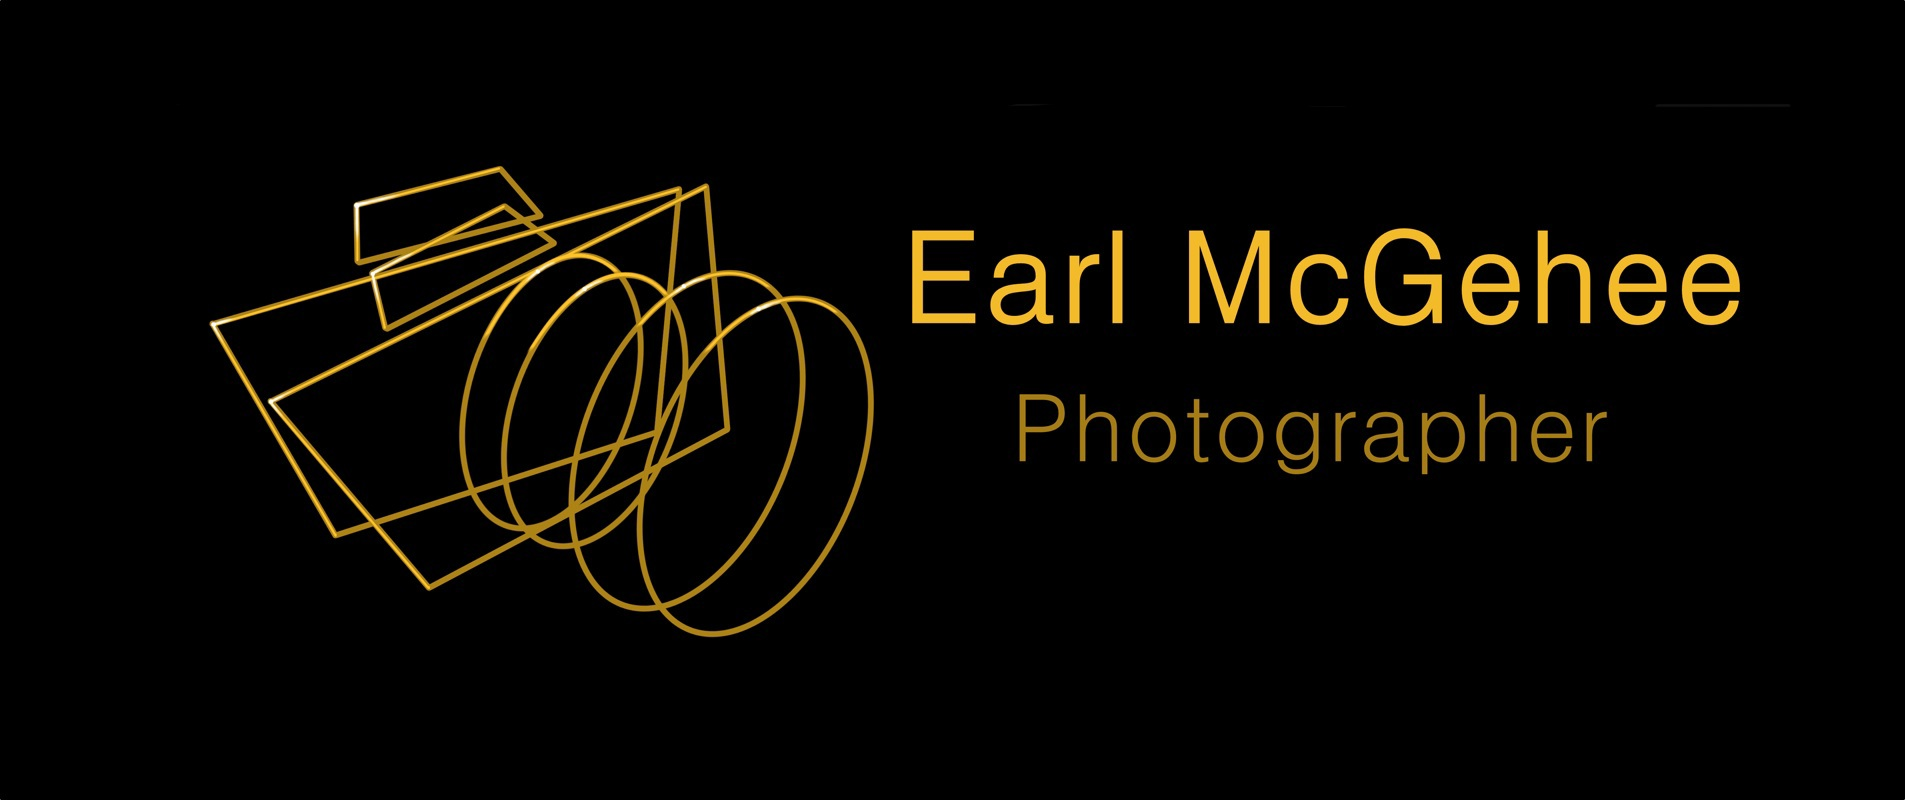 Earl McGehee, photographer